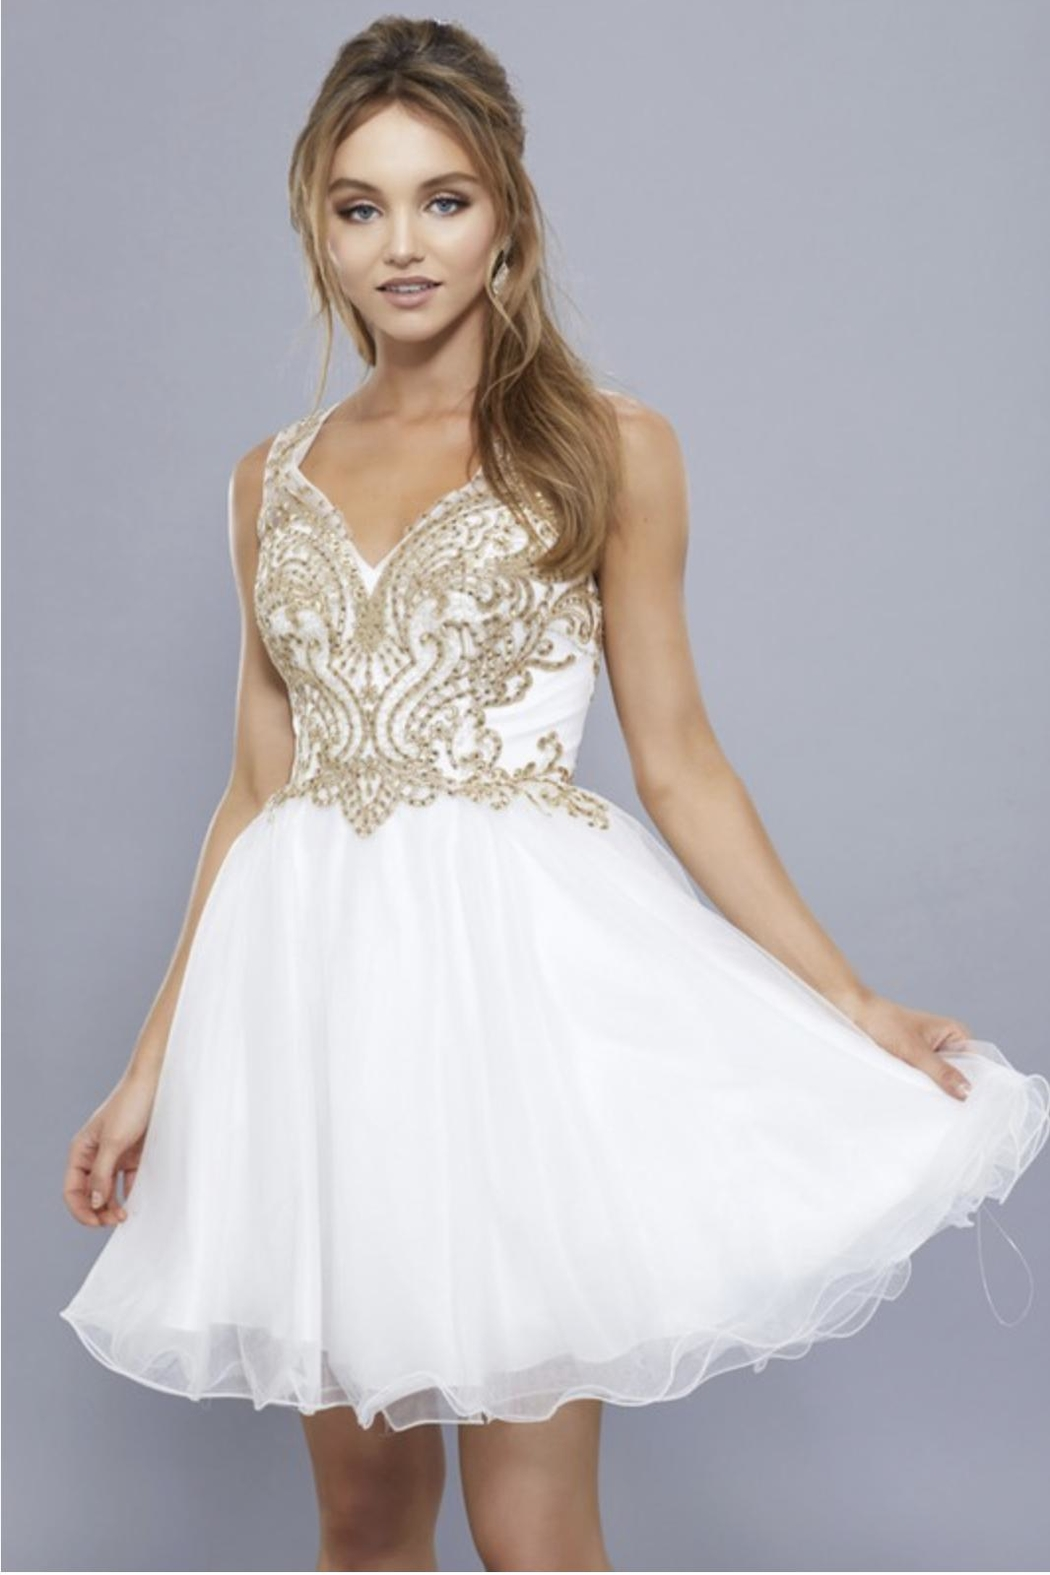 NOX A N A B E L Embroidered Short Prom-Dress - Front Full Image